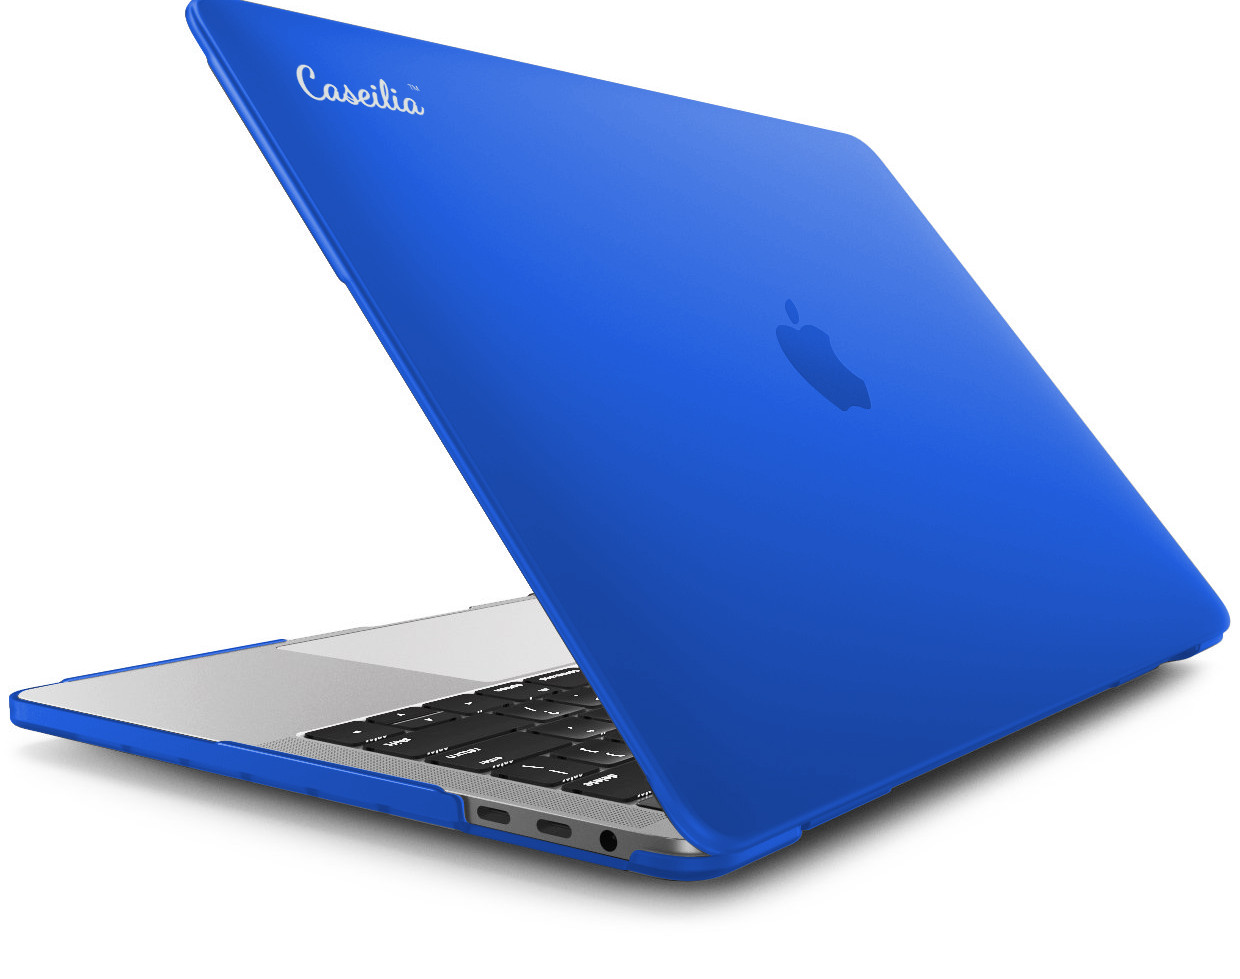 Caseilia_MacBook_MATTE-blue.jpg